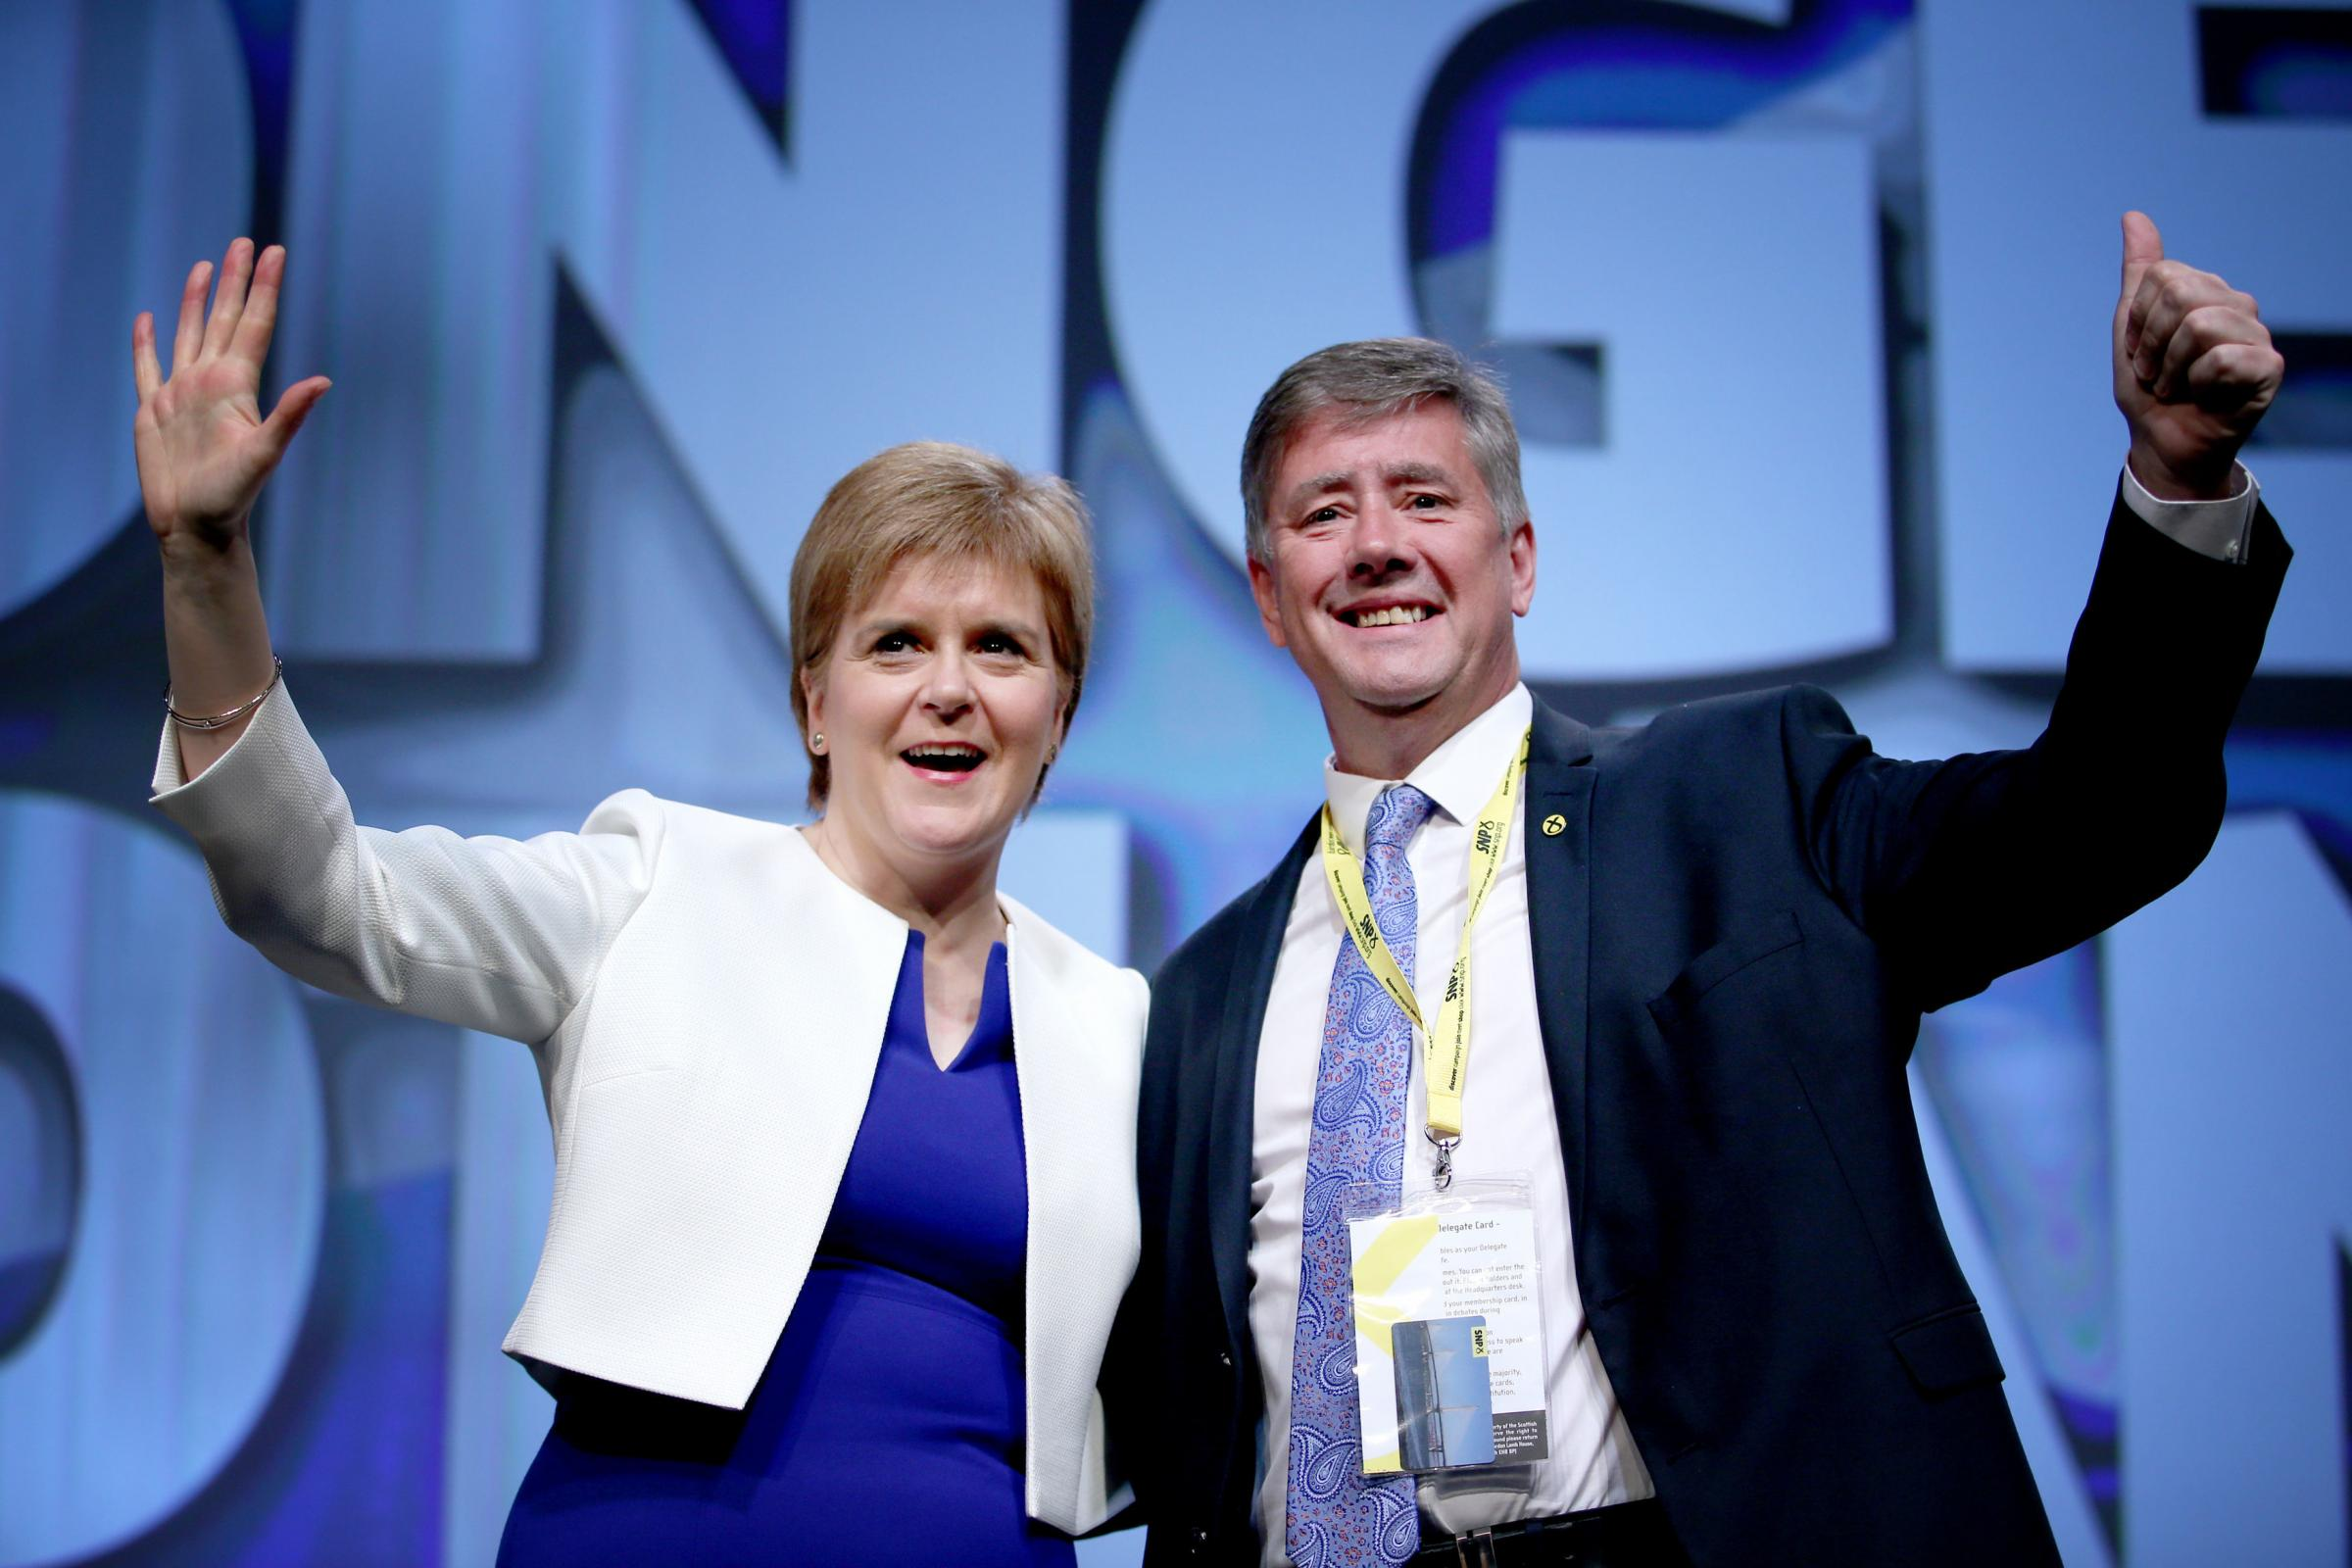 Common Weal said it wishes to take up the offer of Nicola Sturgeon and Keith Brown to discuss the offer that will be made to the nation ahead of indyref2. Photograph: PA